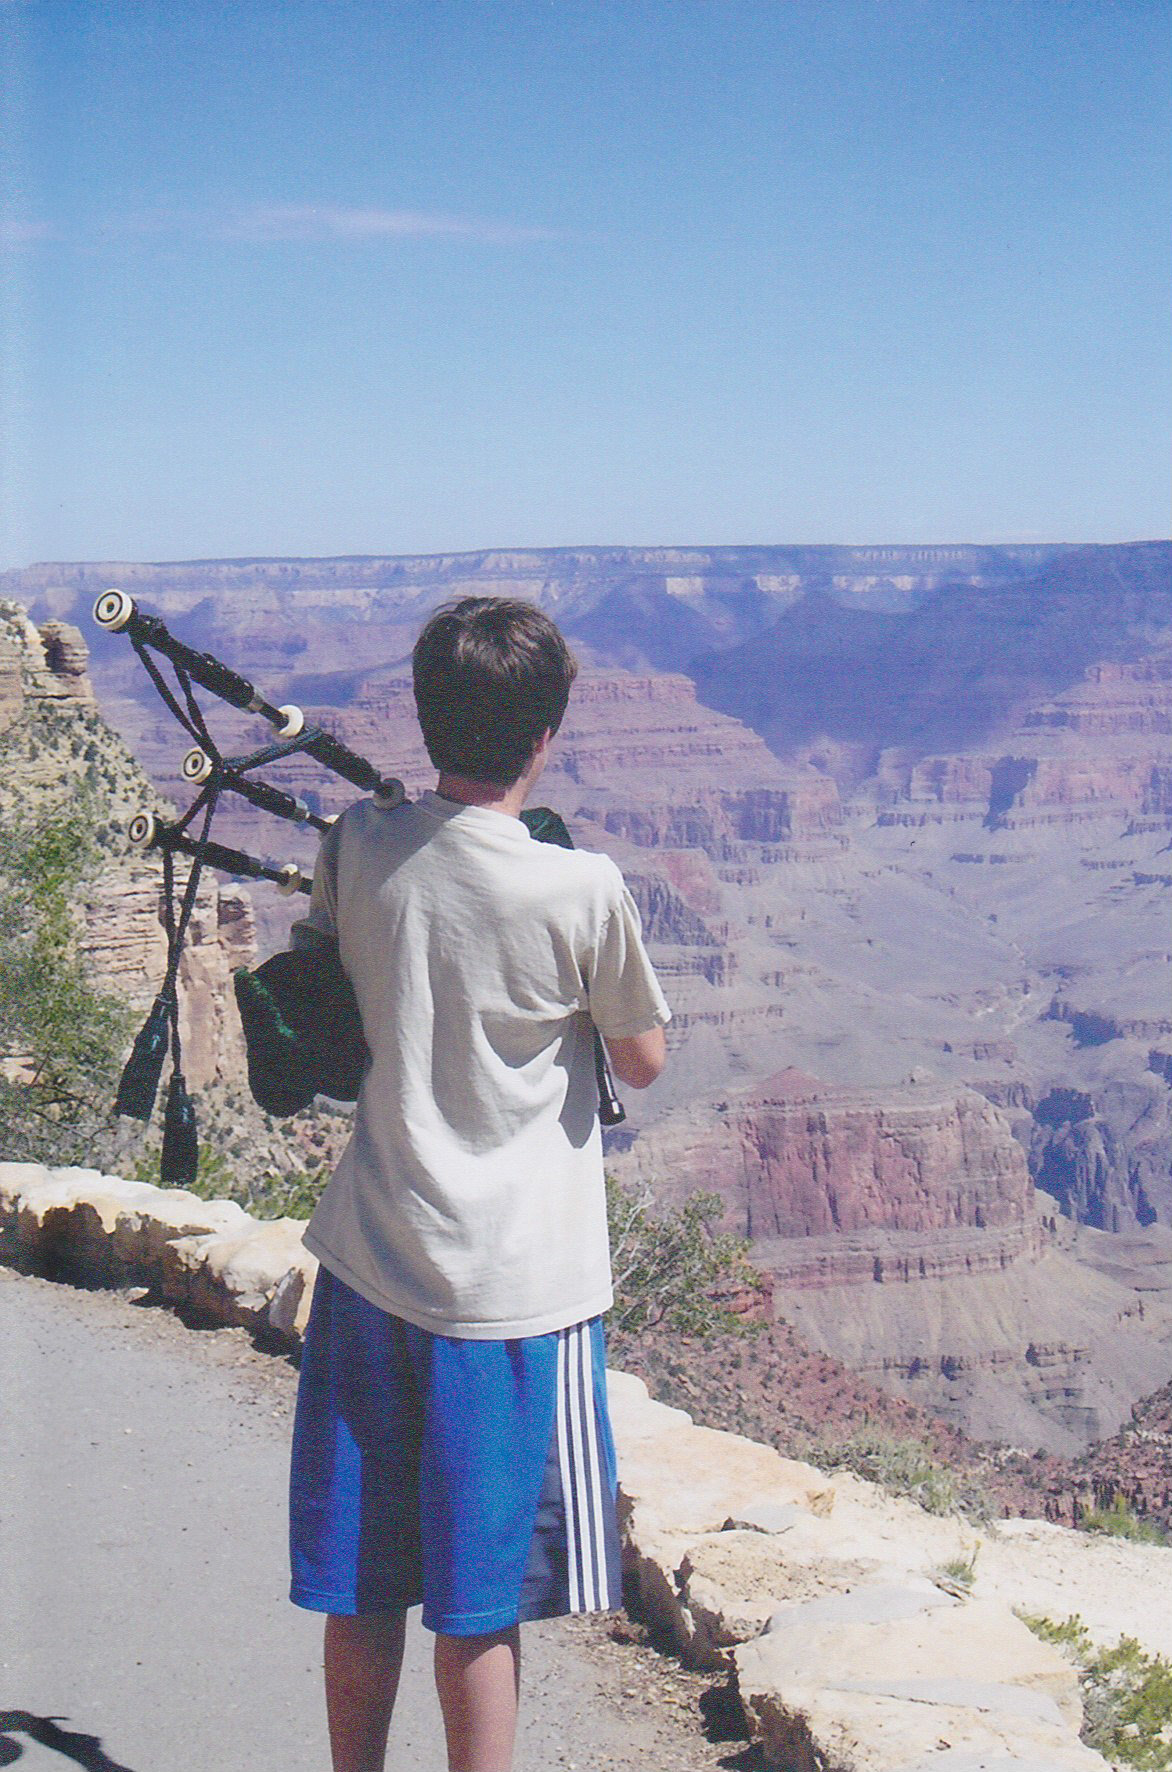 Kyle plays his bagpipes at the rim of the Grand Canyon